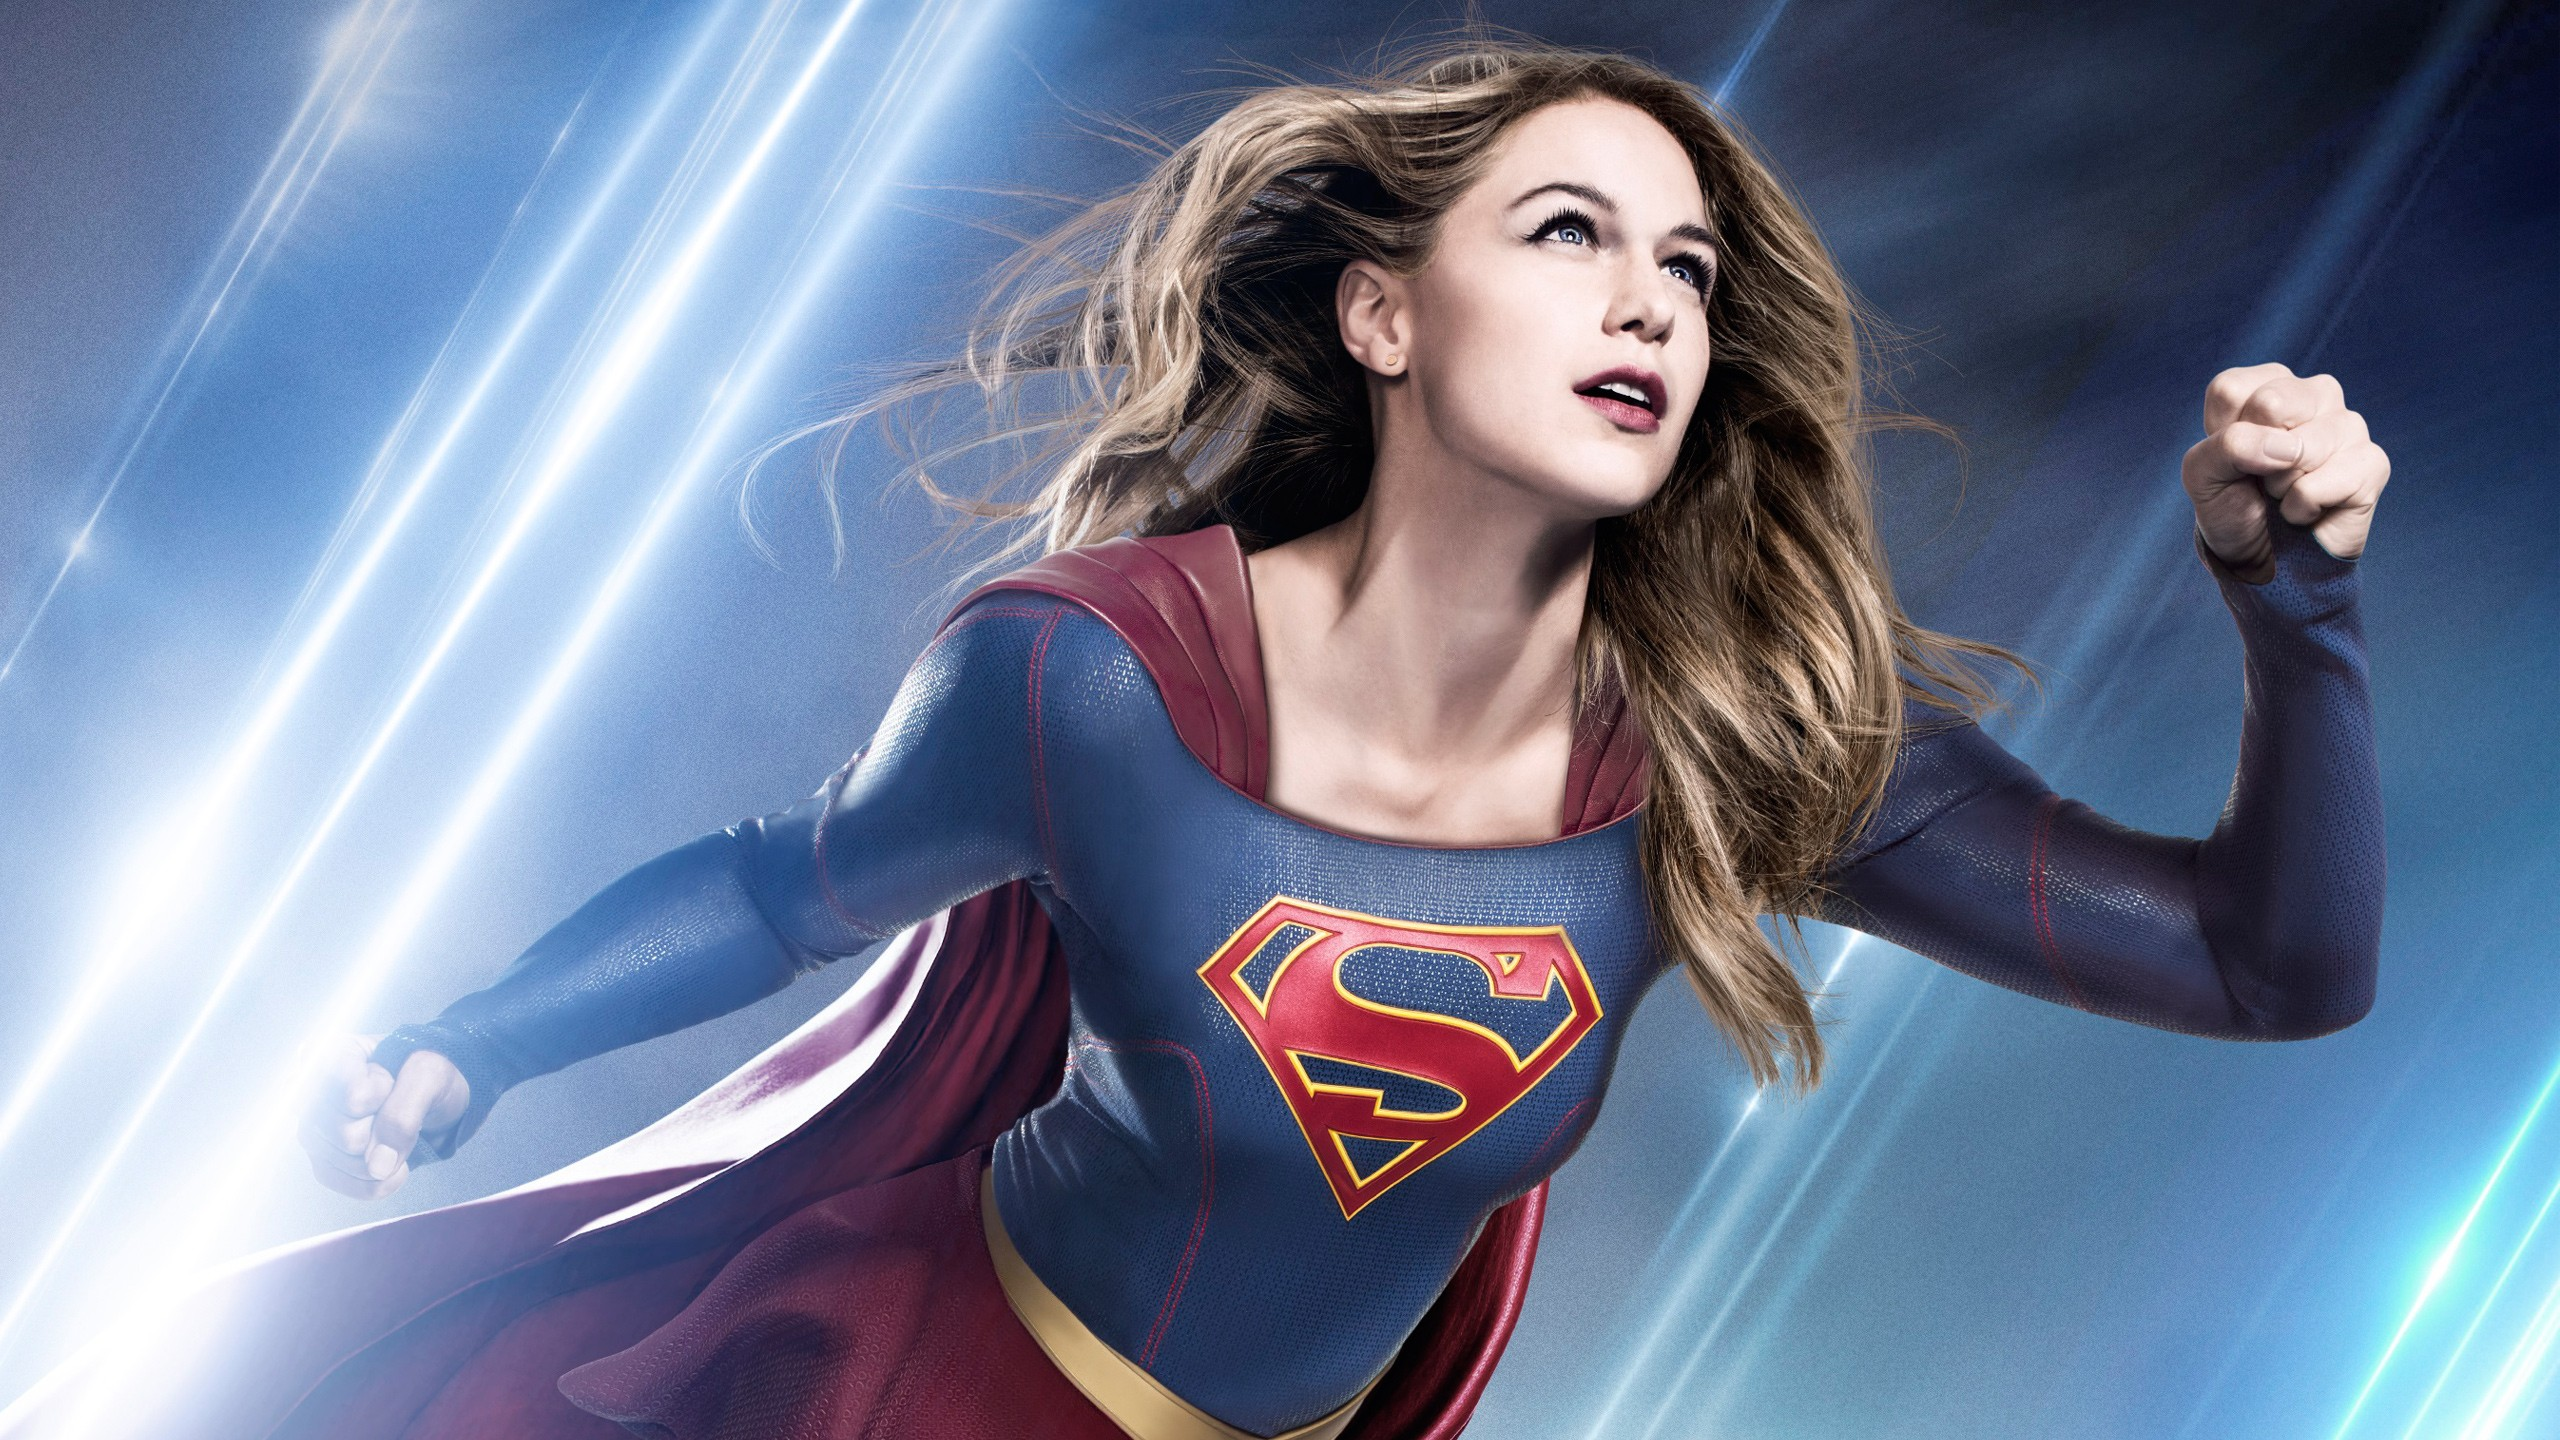 Super Cute Girly Wallpaper Supergirl Season 3 Hd Wallpapers Hd Wallpapers Id 20384